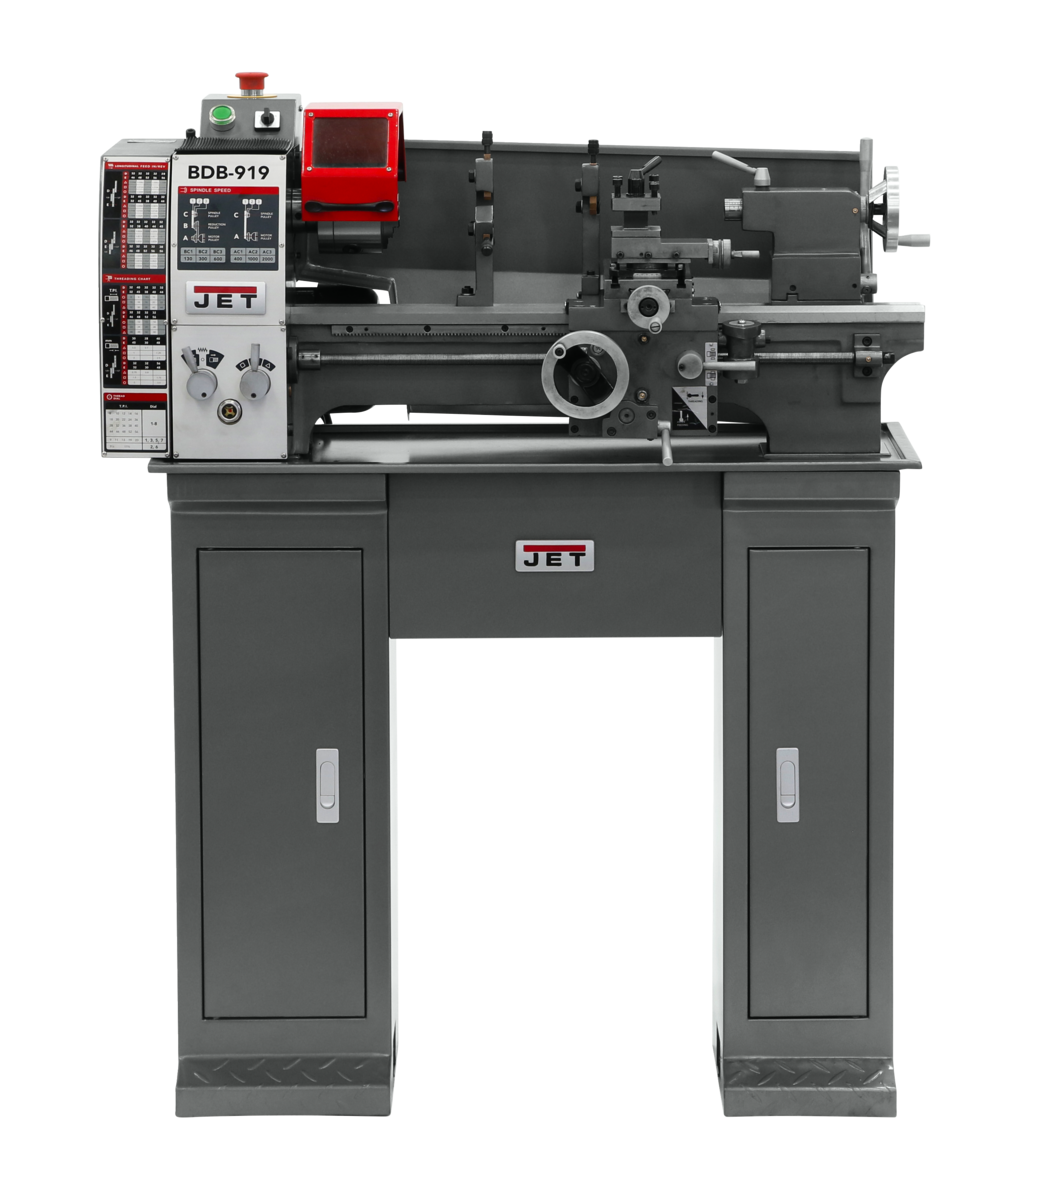 BDB-919 BELT DRIVE LATHE WITH STAND